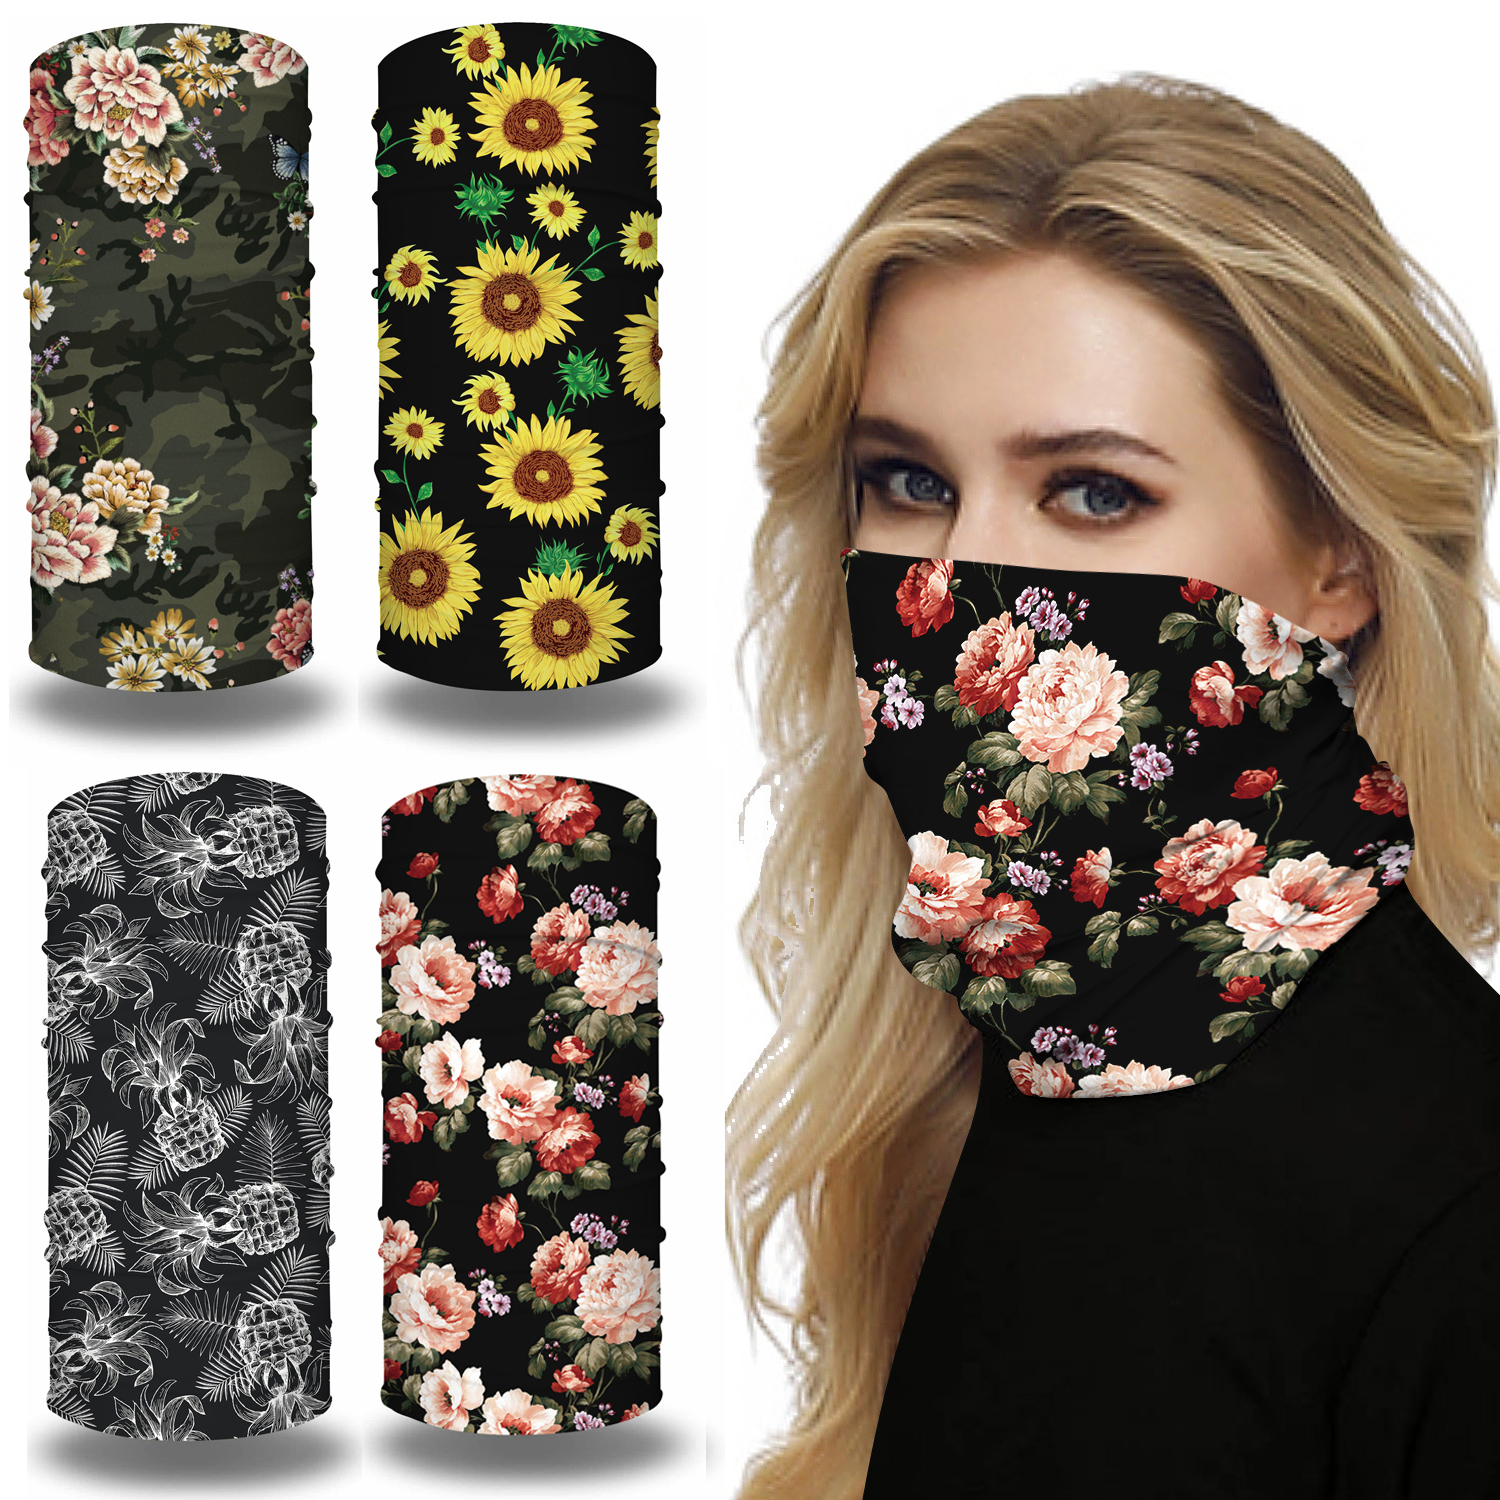 Floral Printing Seamless Bandana Face Mask For Women Sports Yoga Workout Headband Magic Scarf Windproof Sunscreen Breathable